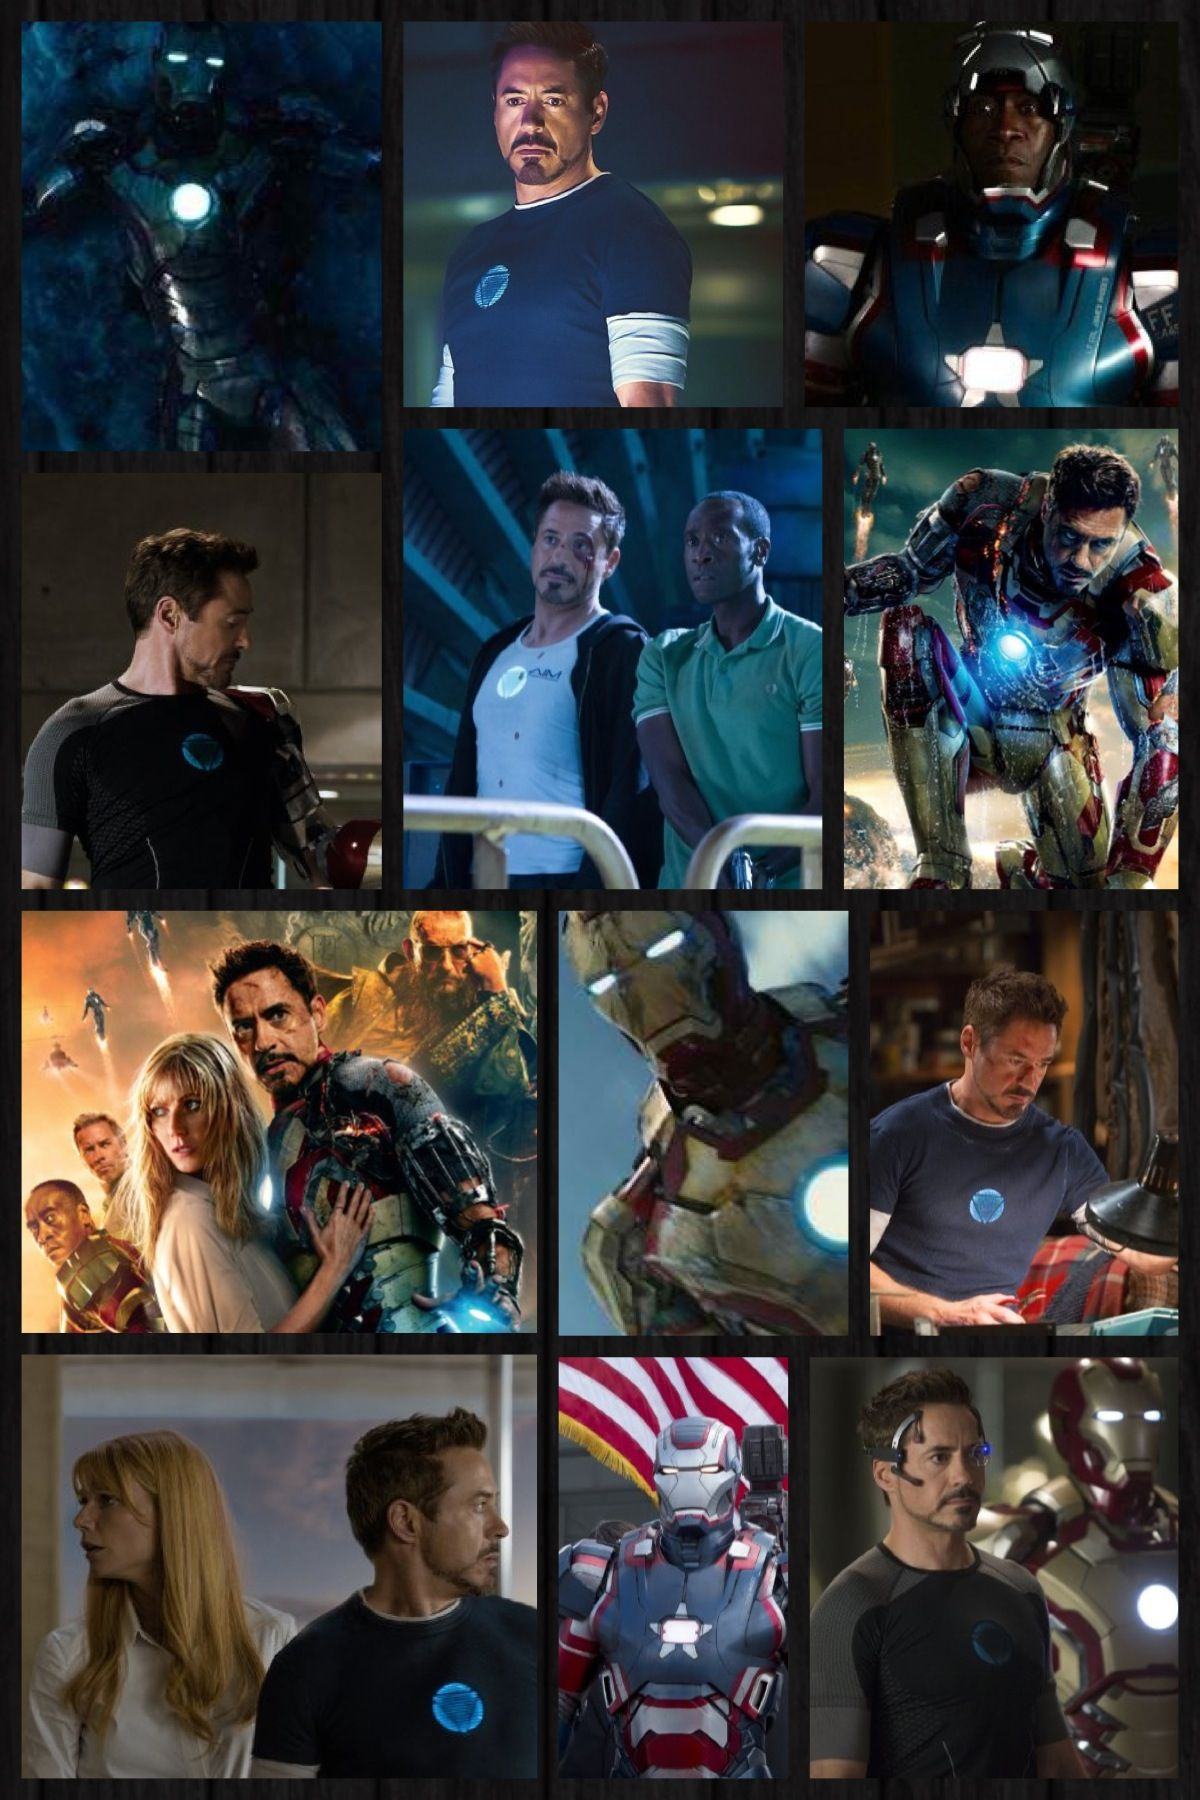 I Saw This Movie Yesterday May 3 And It Was Amazing Definitely The Best Iron Man Of The 3 Iron Man Tony Stark Iron Man Tony Stark Iron Man